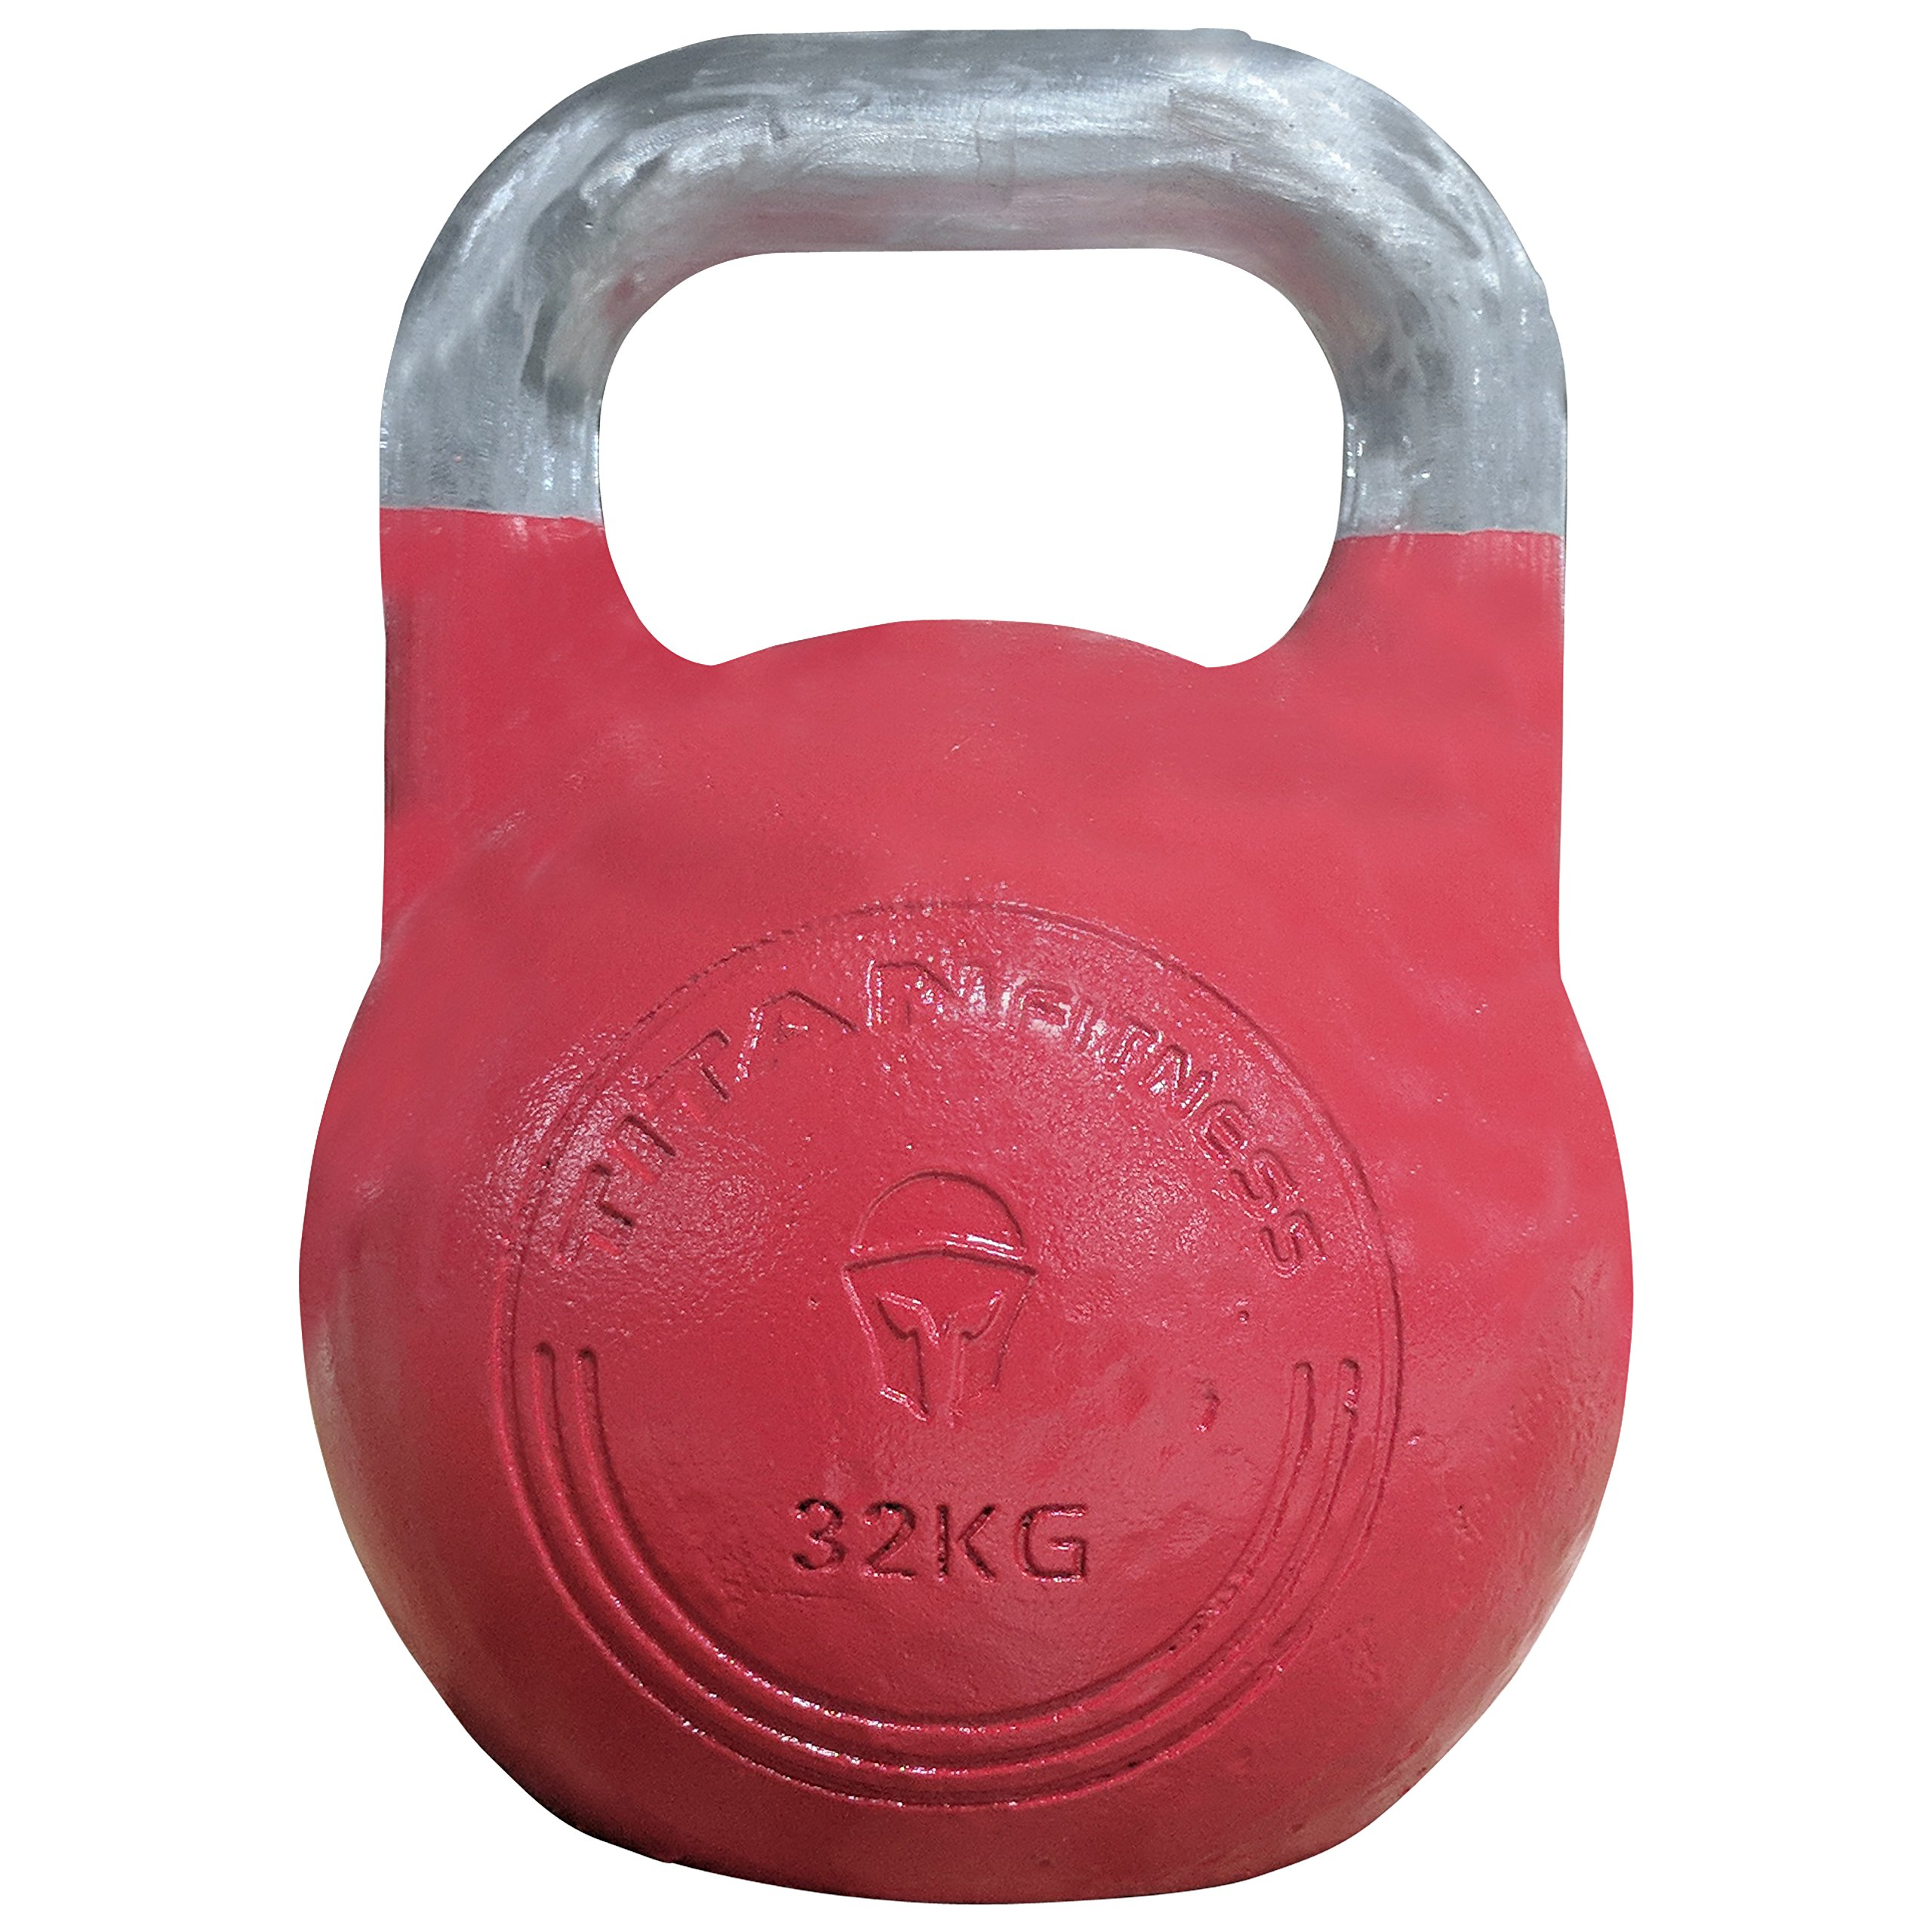 Titan Competition Style Kettlebell - 32 KG